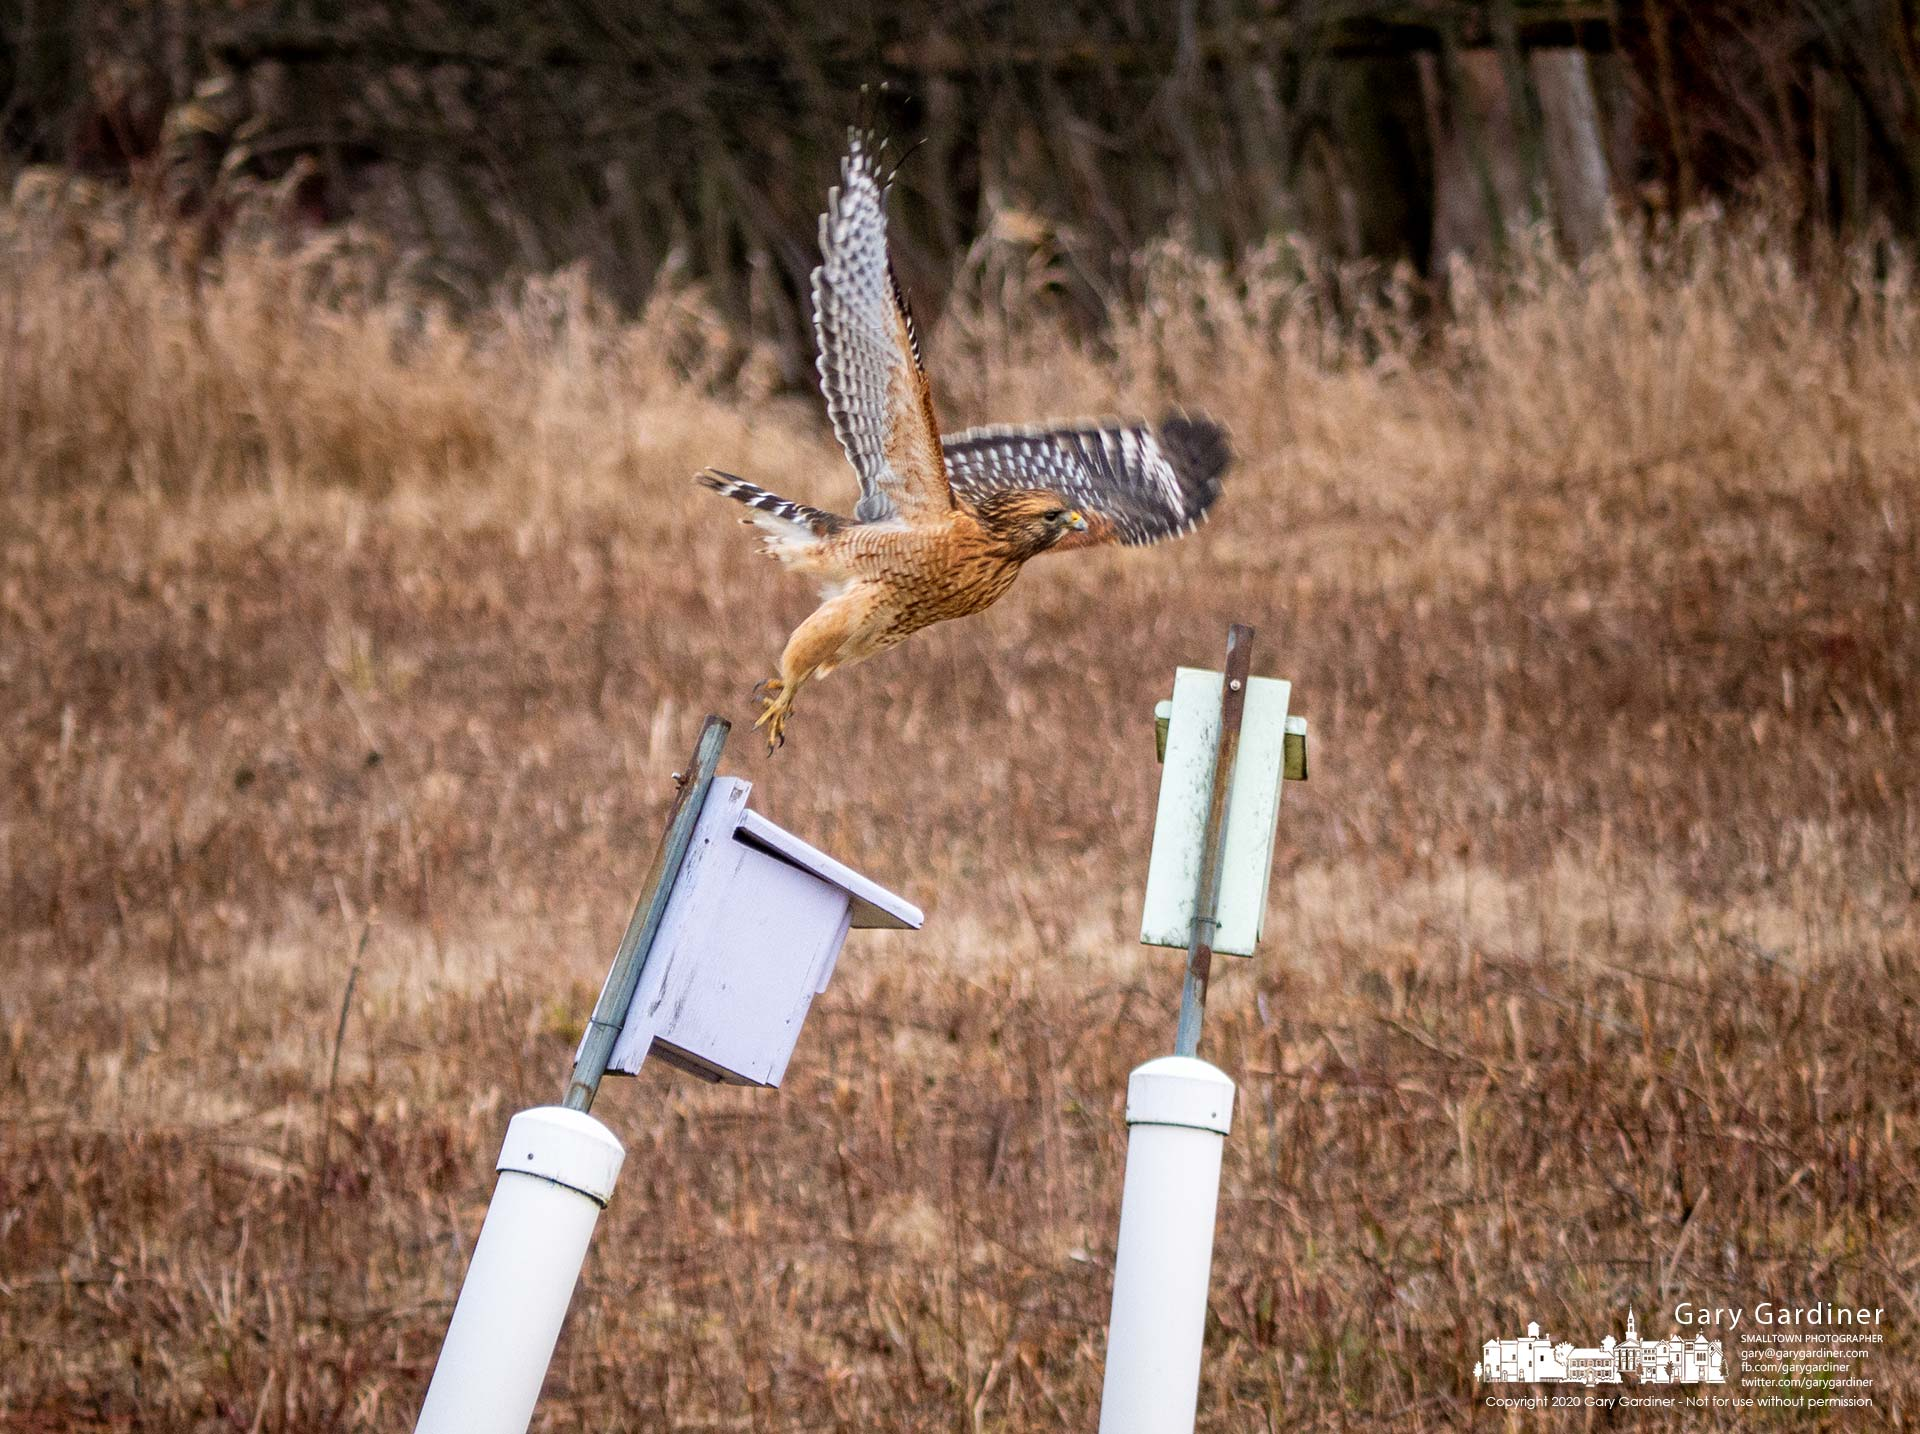 A Cooper's Hawk launches itself from a bluebird nesting box where it perched watching the meadow fields on the shoreline of Hoover Reservoir. My Final Photo for Jan. 1, 2020.